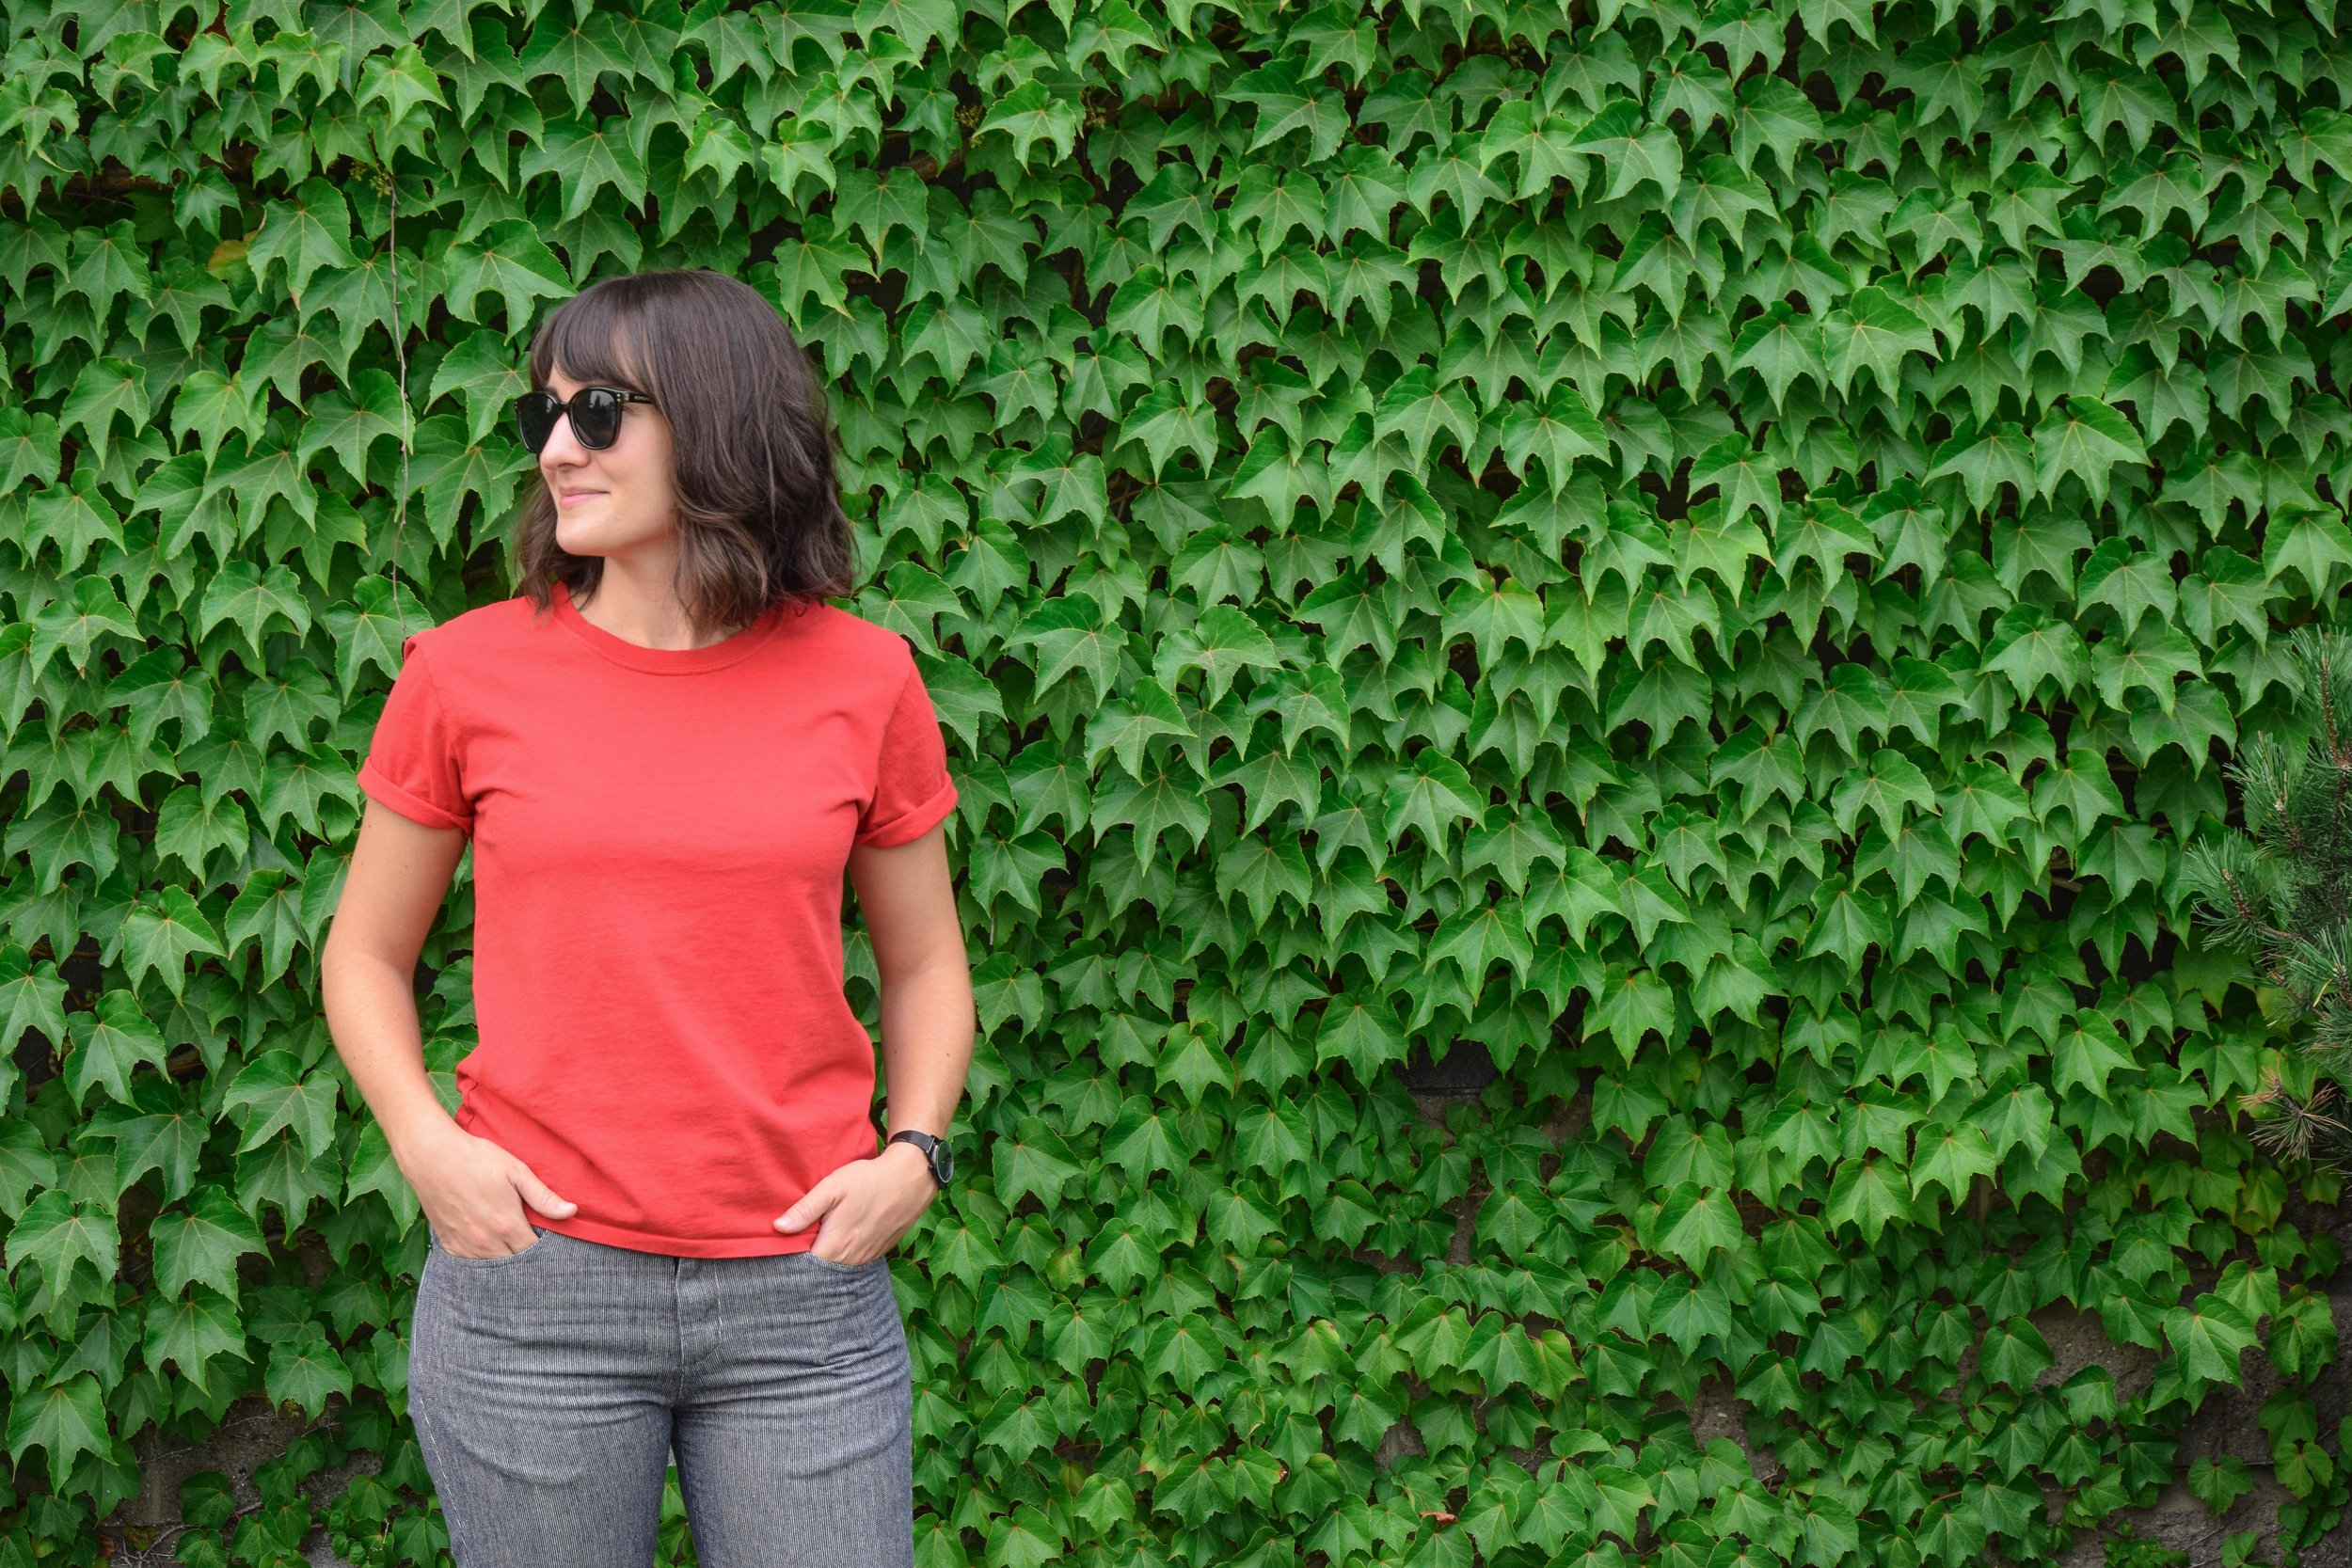 Tradlands The Catt in Ruby - 5 T-Shirts for Comfortable and Ethical Travel Wear